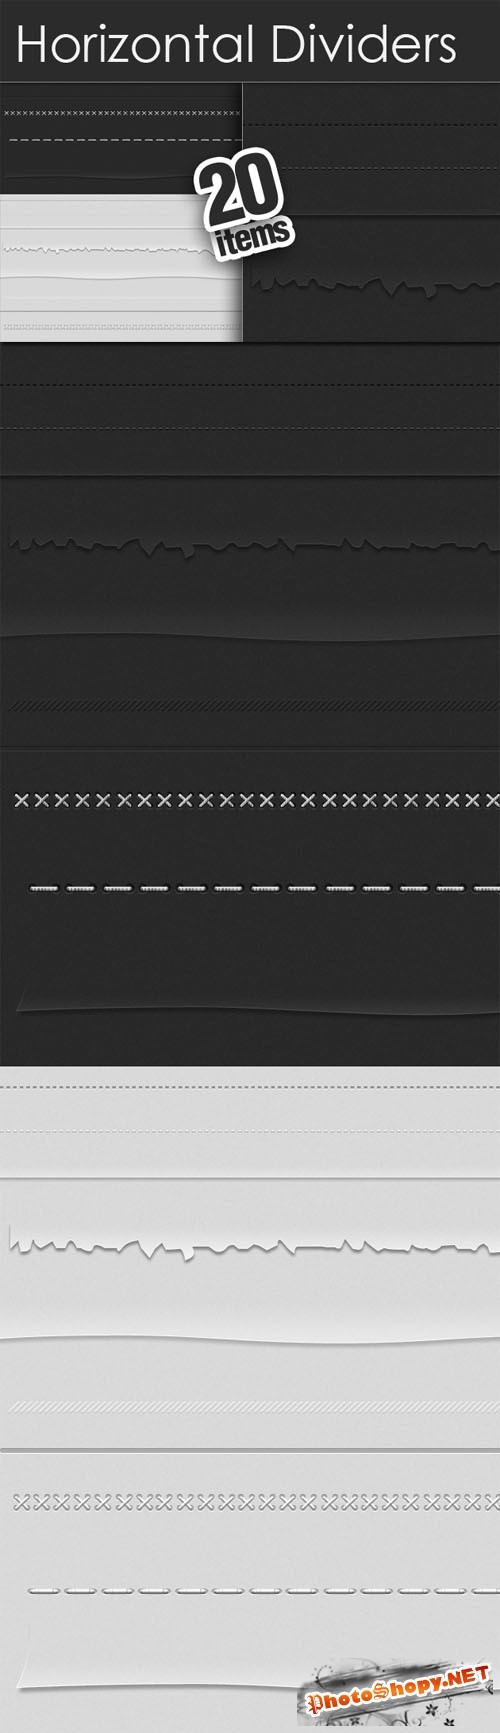 Designtnt - Horizontal Dividers Set for Photoshop